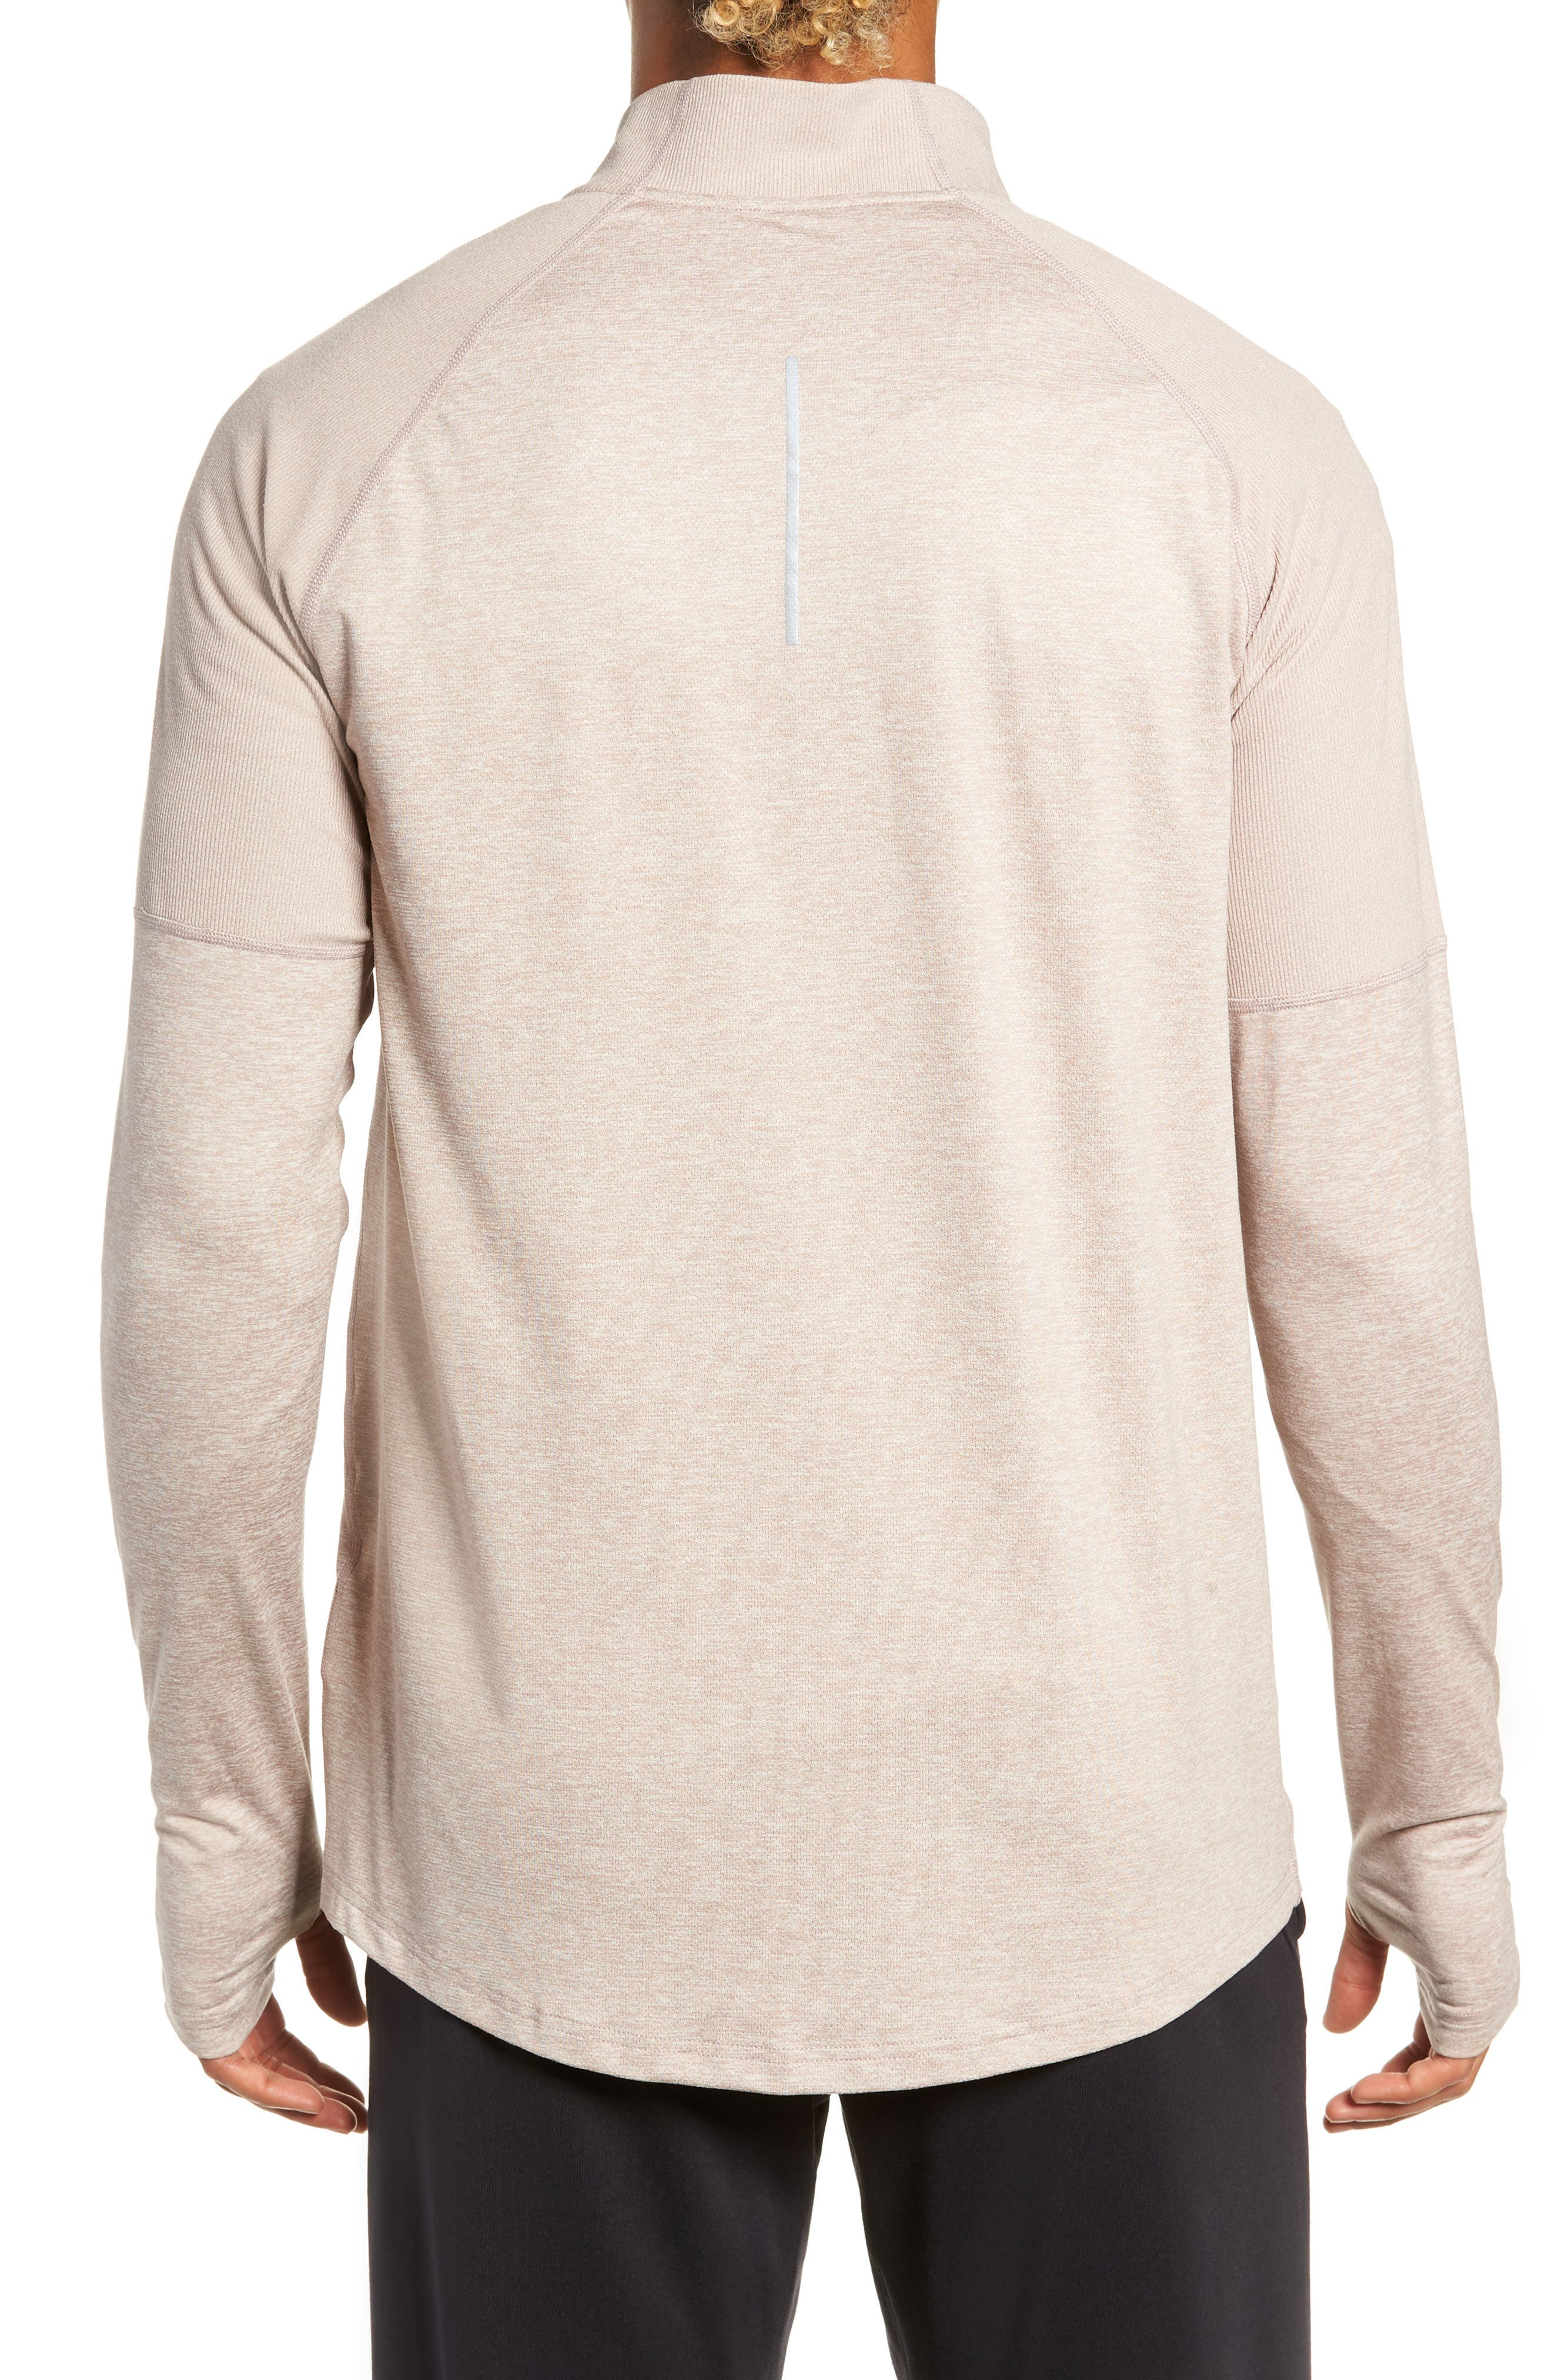 Element HZ 2.0 Performance Pullover,                             Alternate thumbnail 2, color,                             DIFFUSED TAUPE/ SAND/ HEATHER